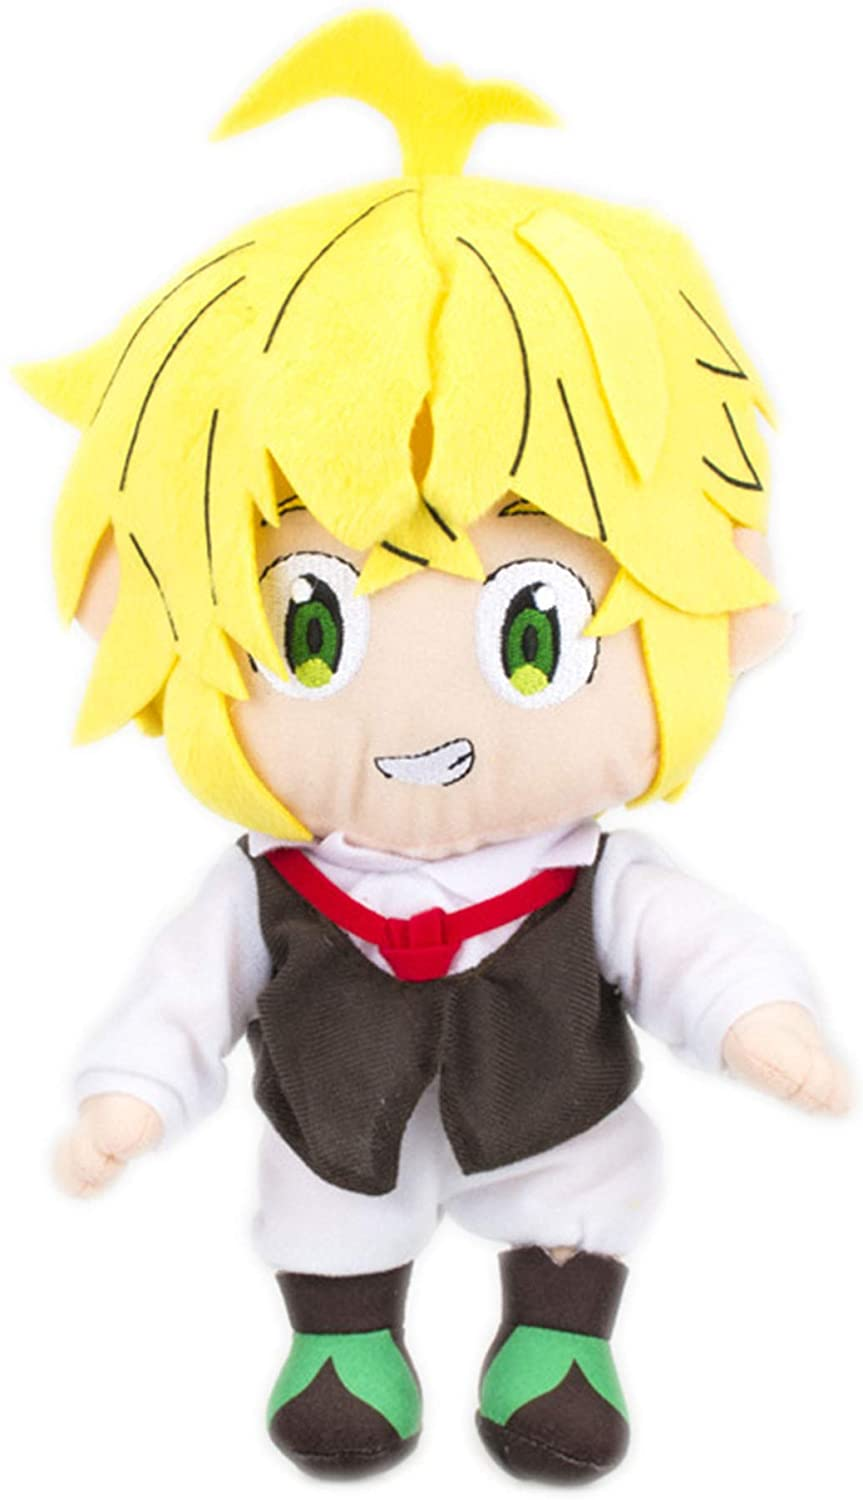 Heionia The Seven Deadly- Meliodas Plush Toy 7.87in, Cosplay Anime Figure Stuffed Plushie Collectible Doll Nap Pillow